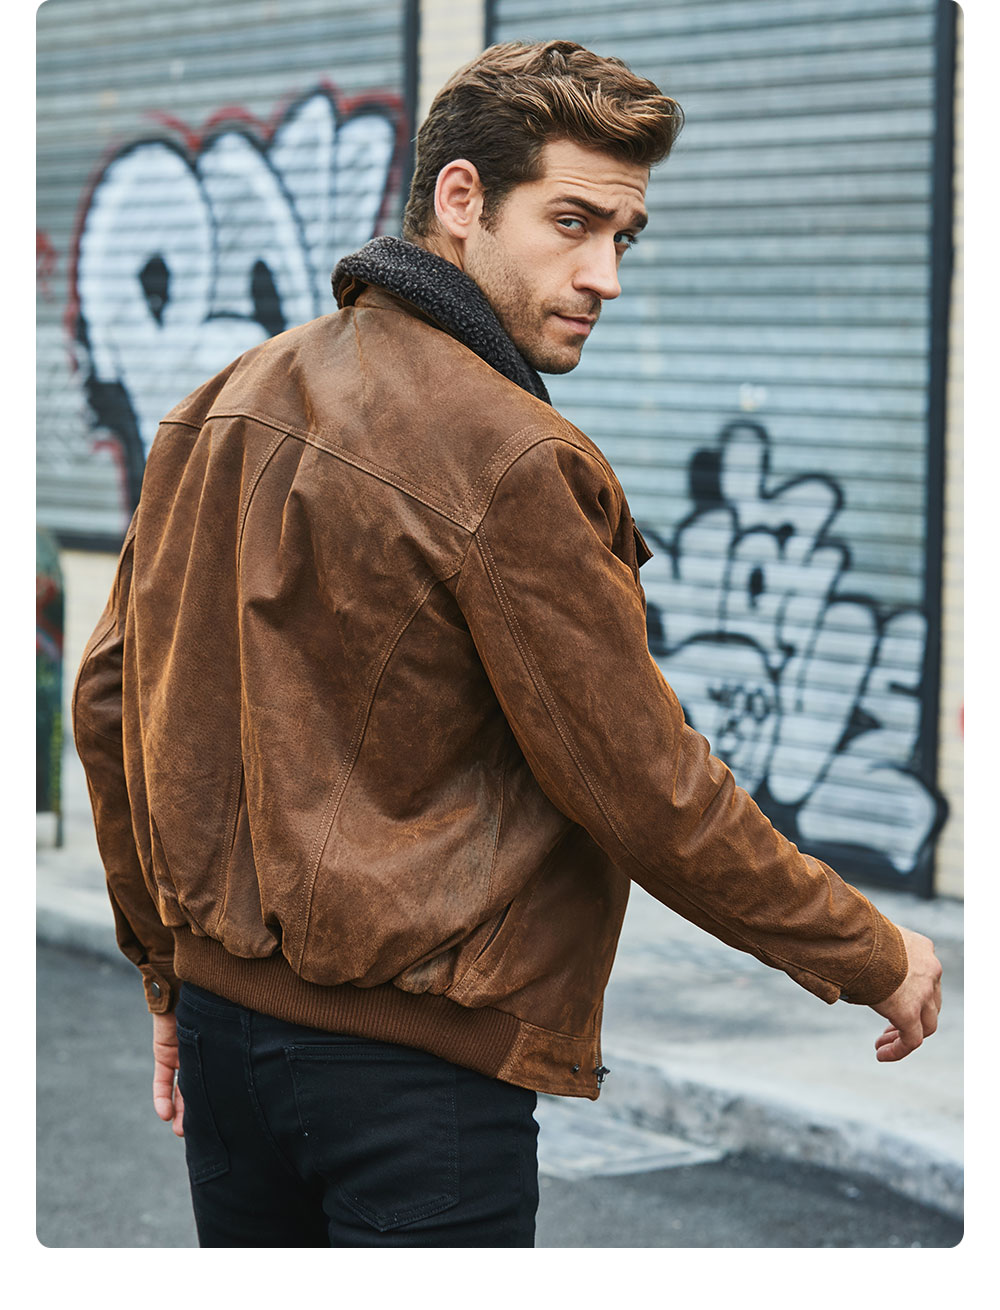 Hf1bf3f71e532418d83d6595d9d0f9ed0v FLAVOR Men's Real Leather Jacket Genuine Leather jacket with faux fur collar male Motorcycle warm coat Genuine Leather Jacket